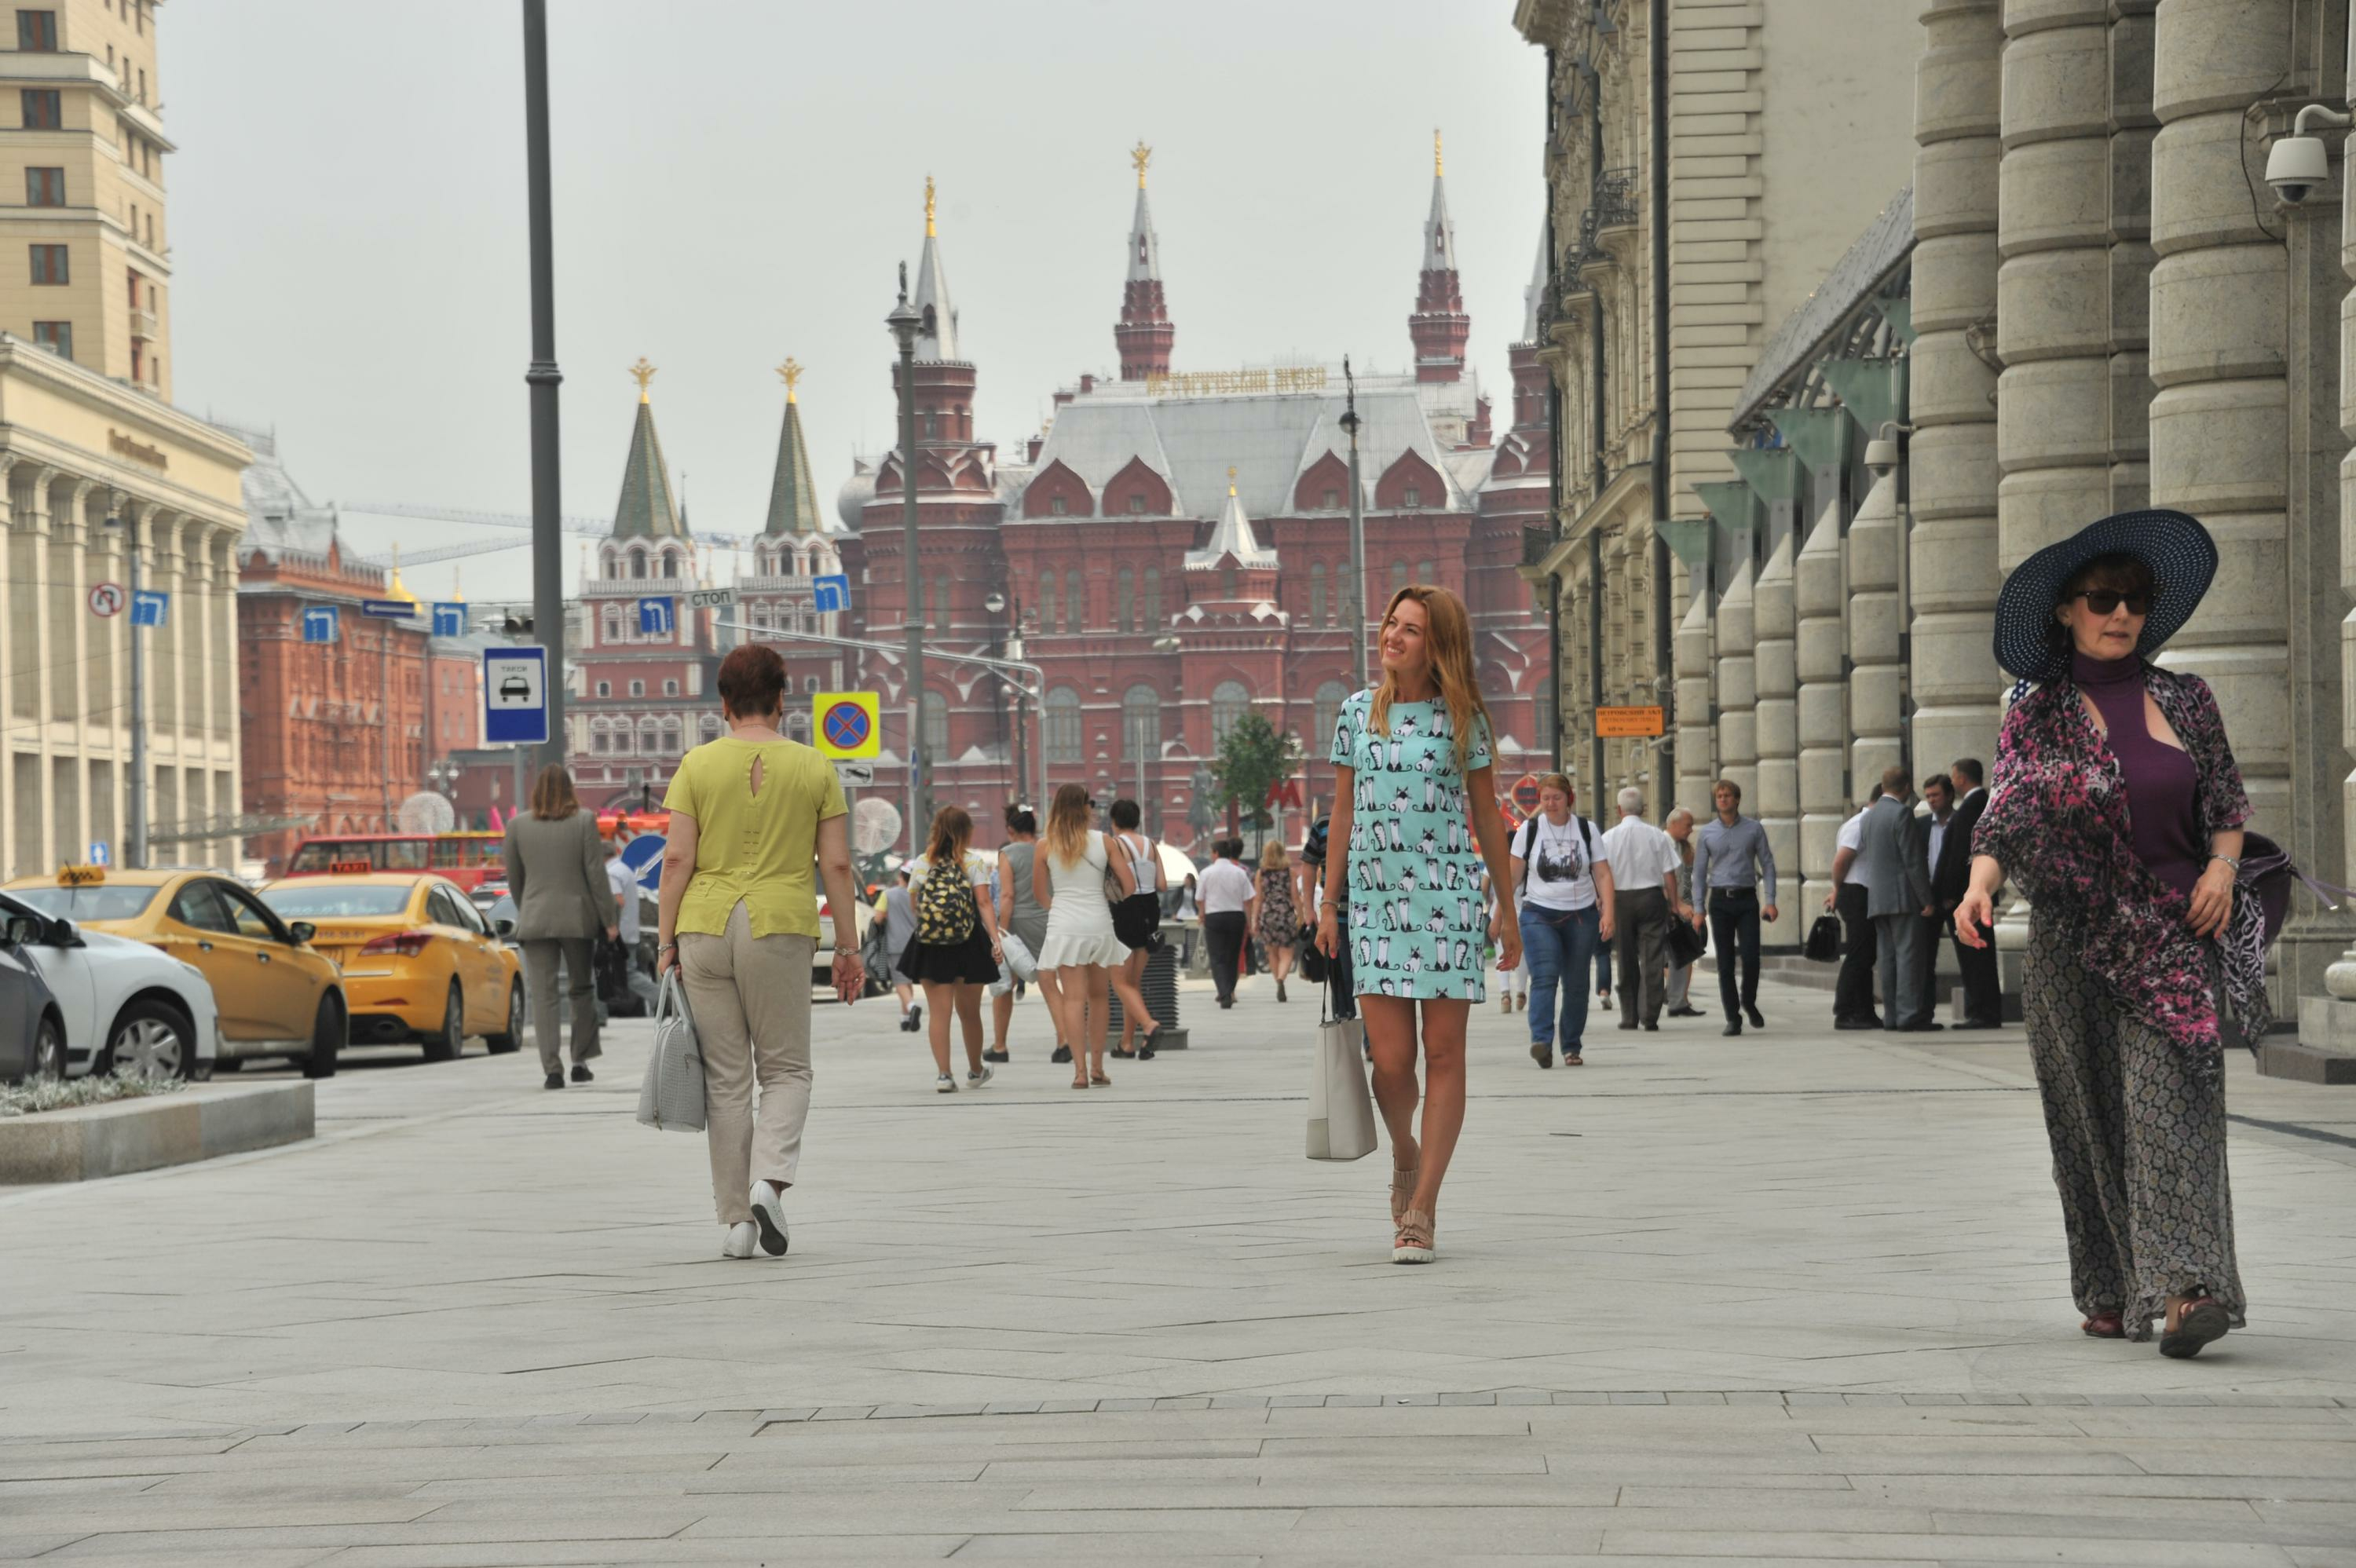 Pedestrians walk on a Moscow street. Source: Global Look Press